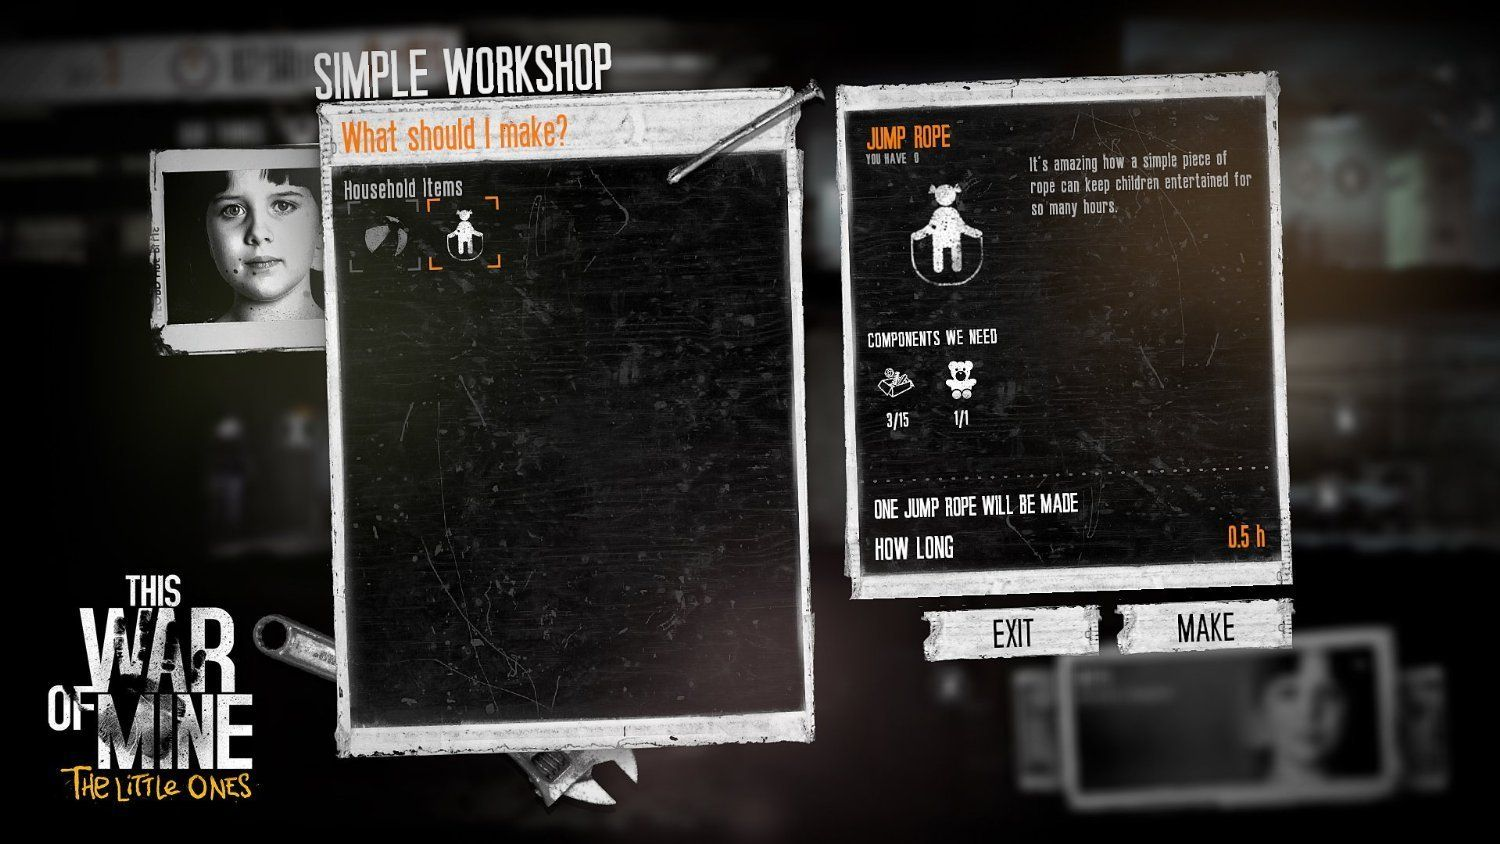 This War Of Mine: The Little Ones (PS4) - 5